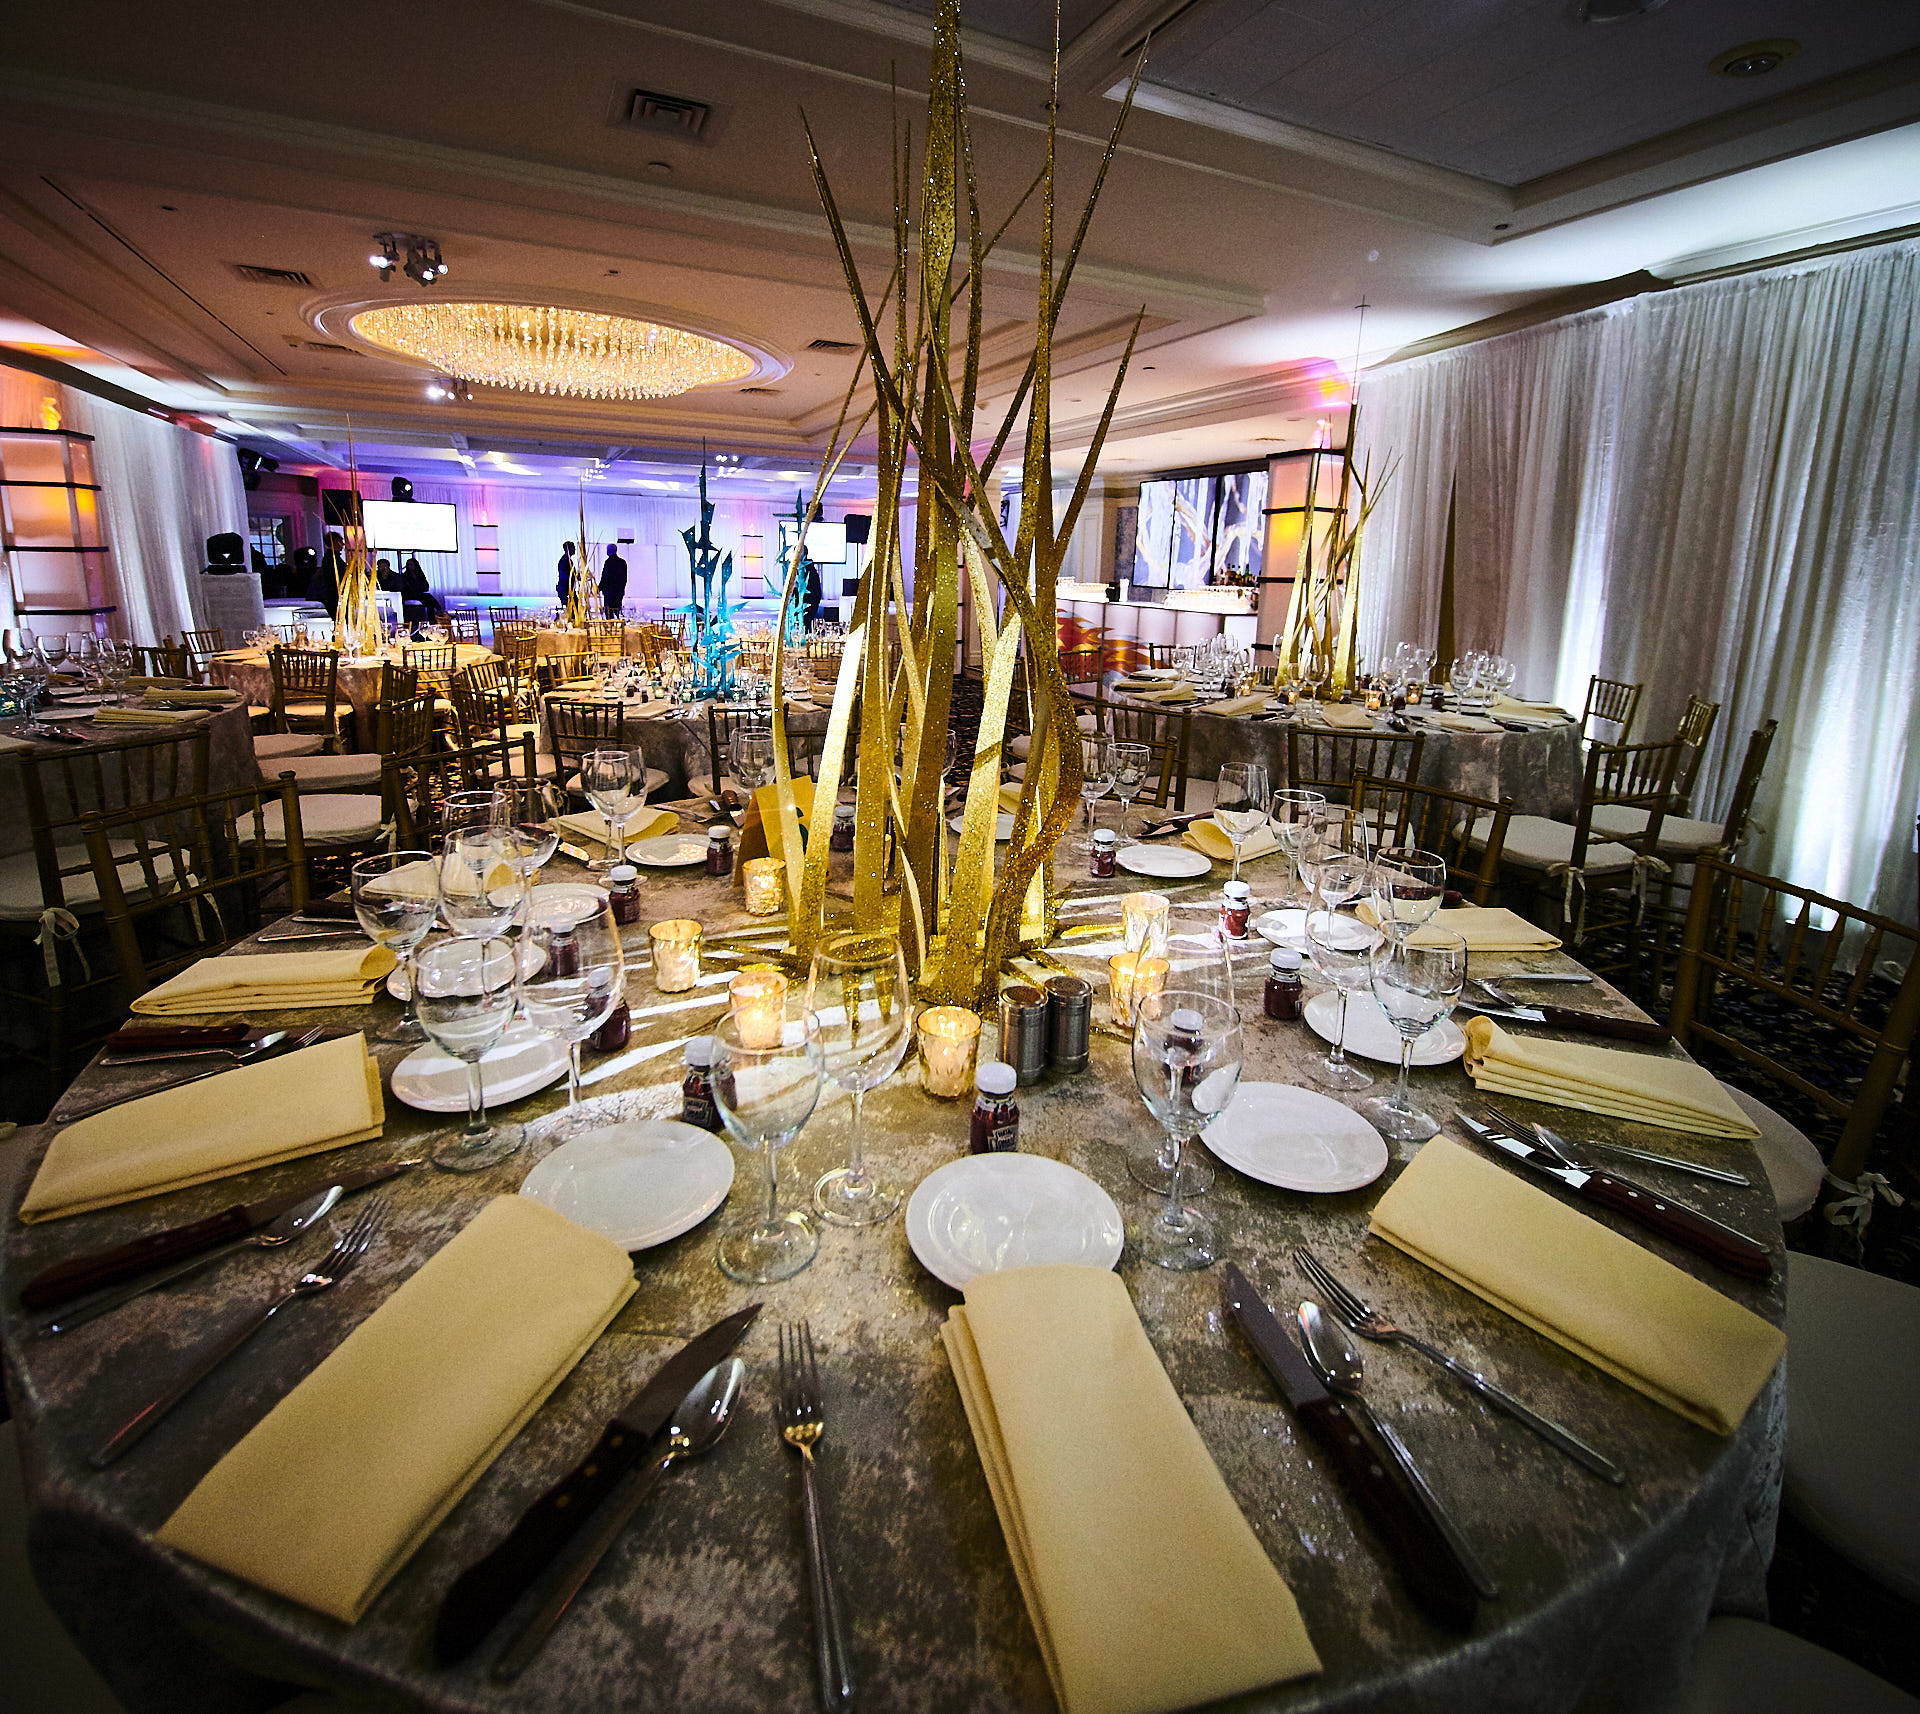 event+design+decor+lighting+custom+centerpieces+centerpiece+rental+rentals+bar+bat+mitzvah+fire+ice.jpg